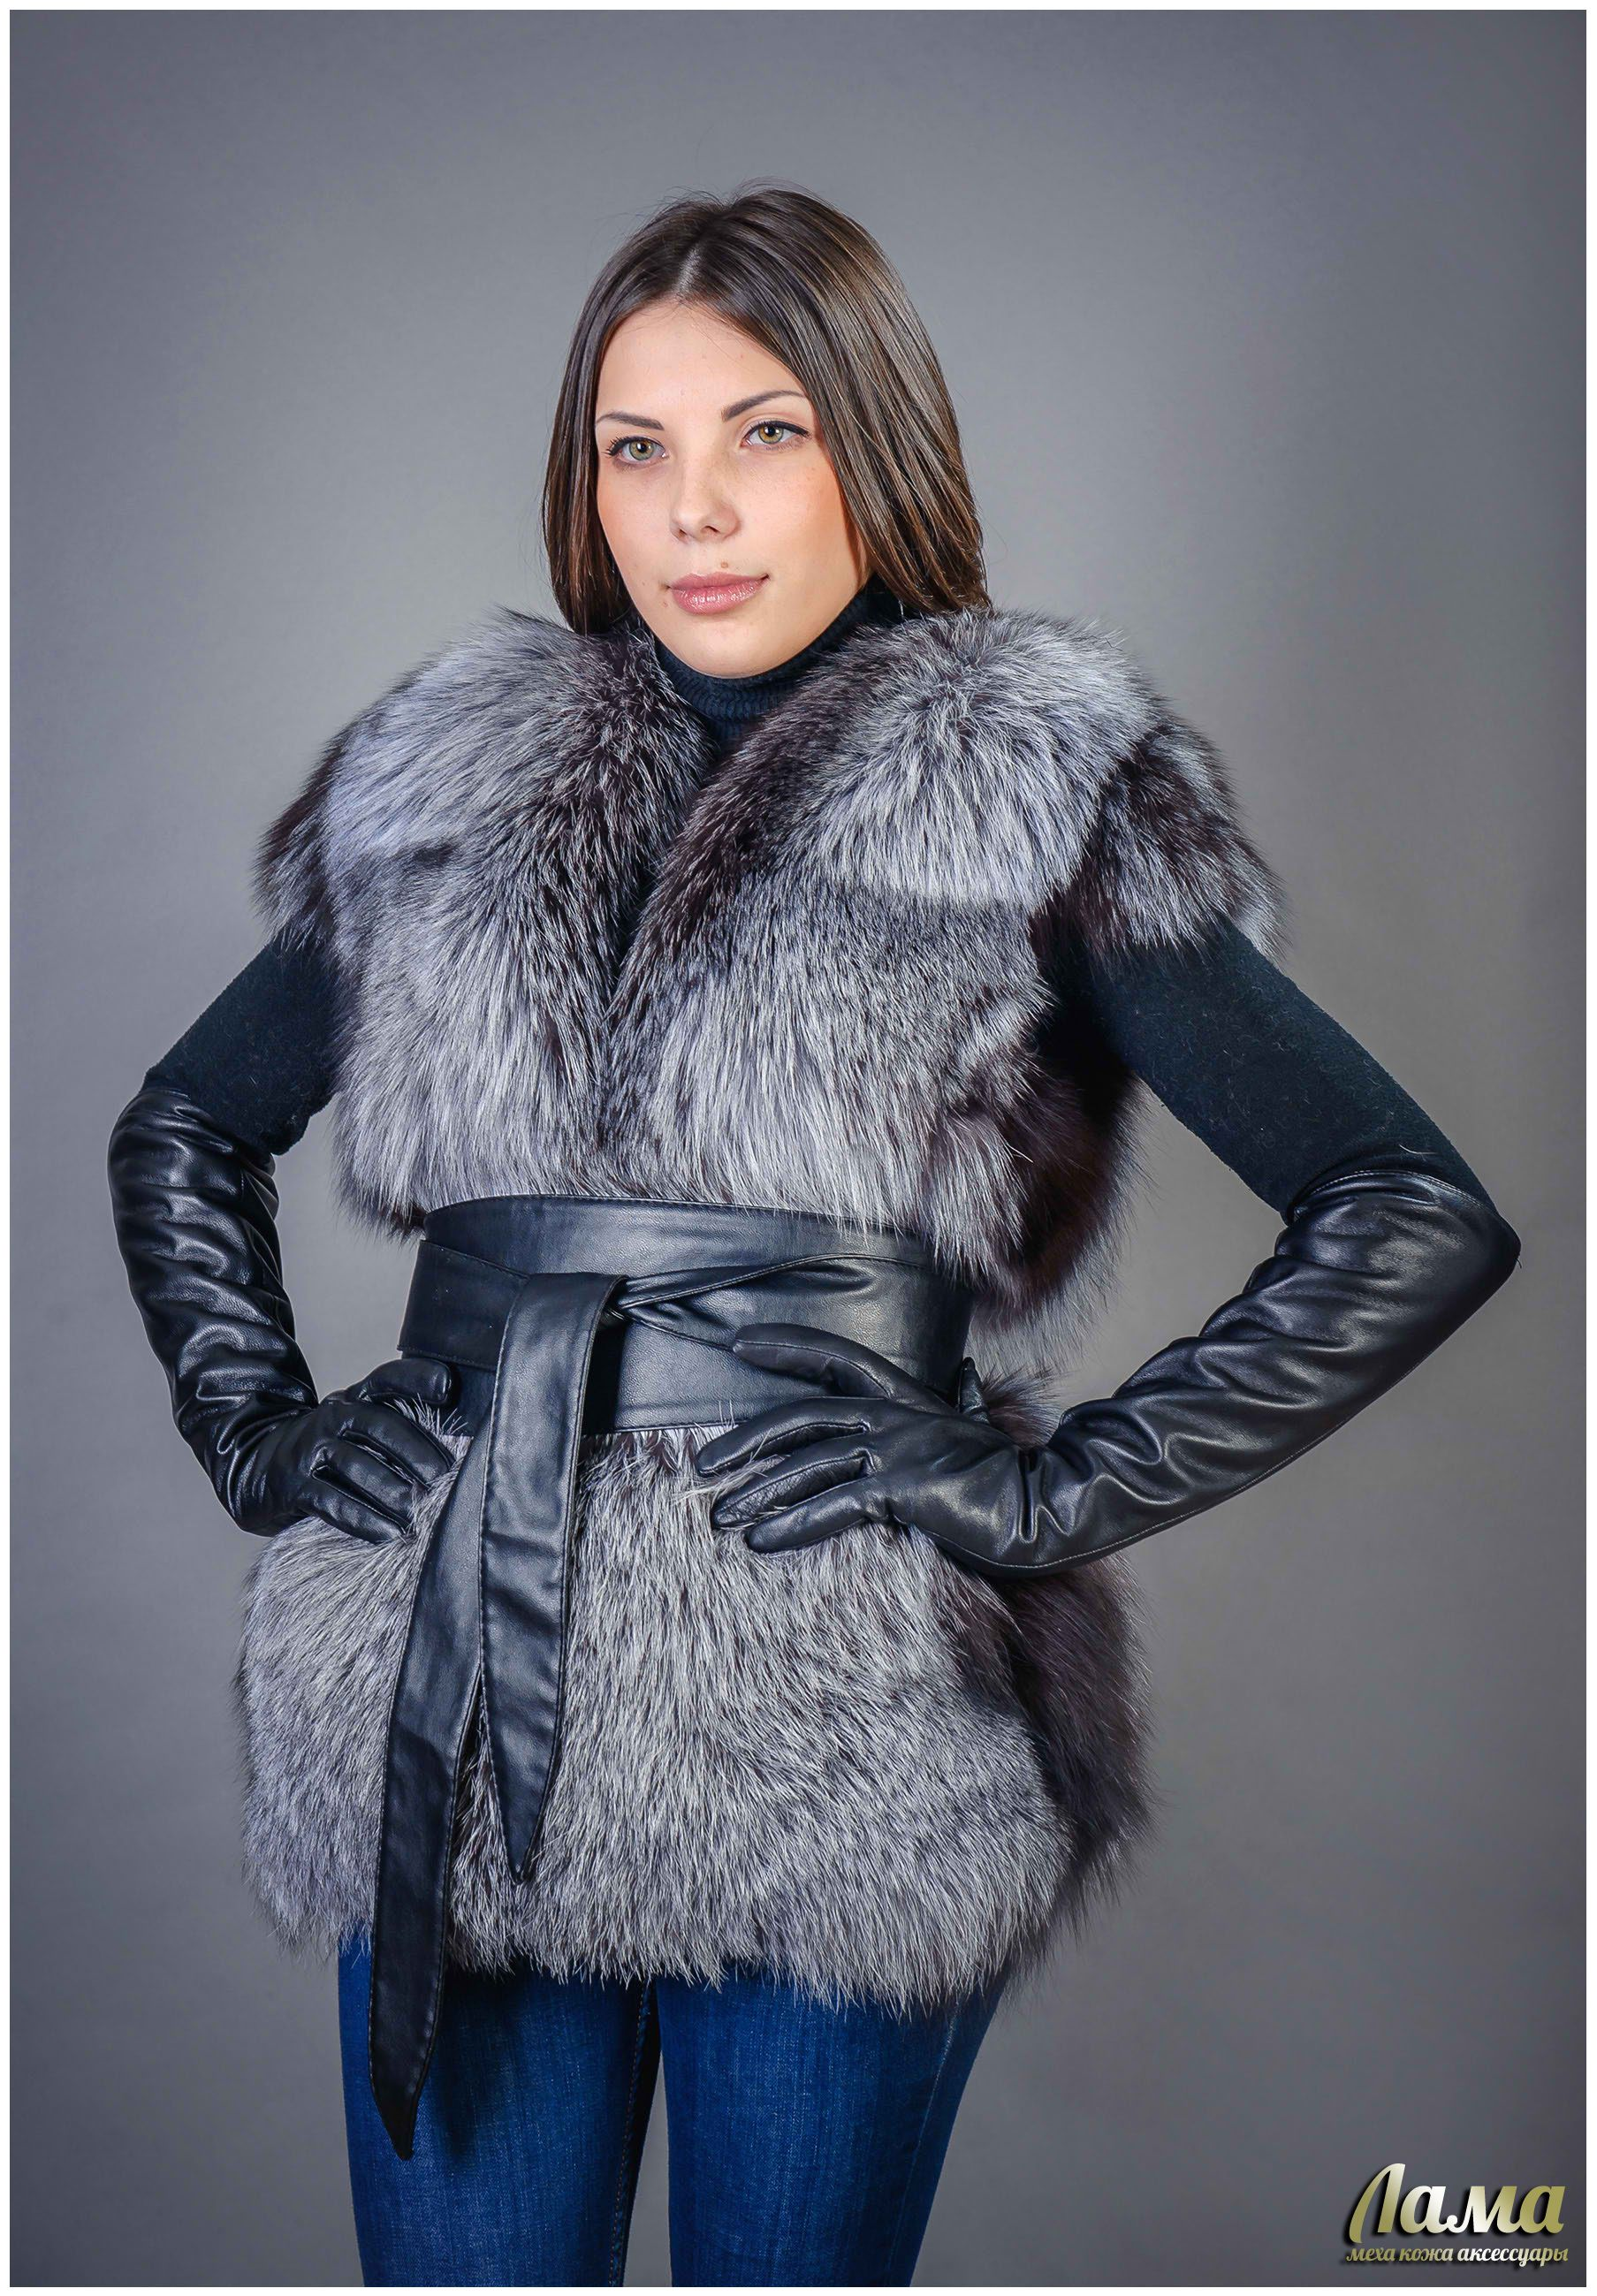 Womens leather gloves sydney - Nice Fur Vest Cinched With A Wide Leather Obi Style Belt Love Those Long